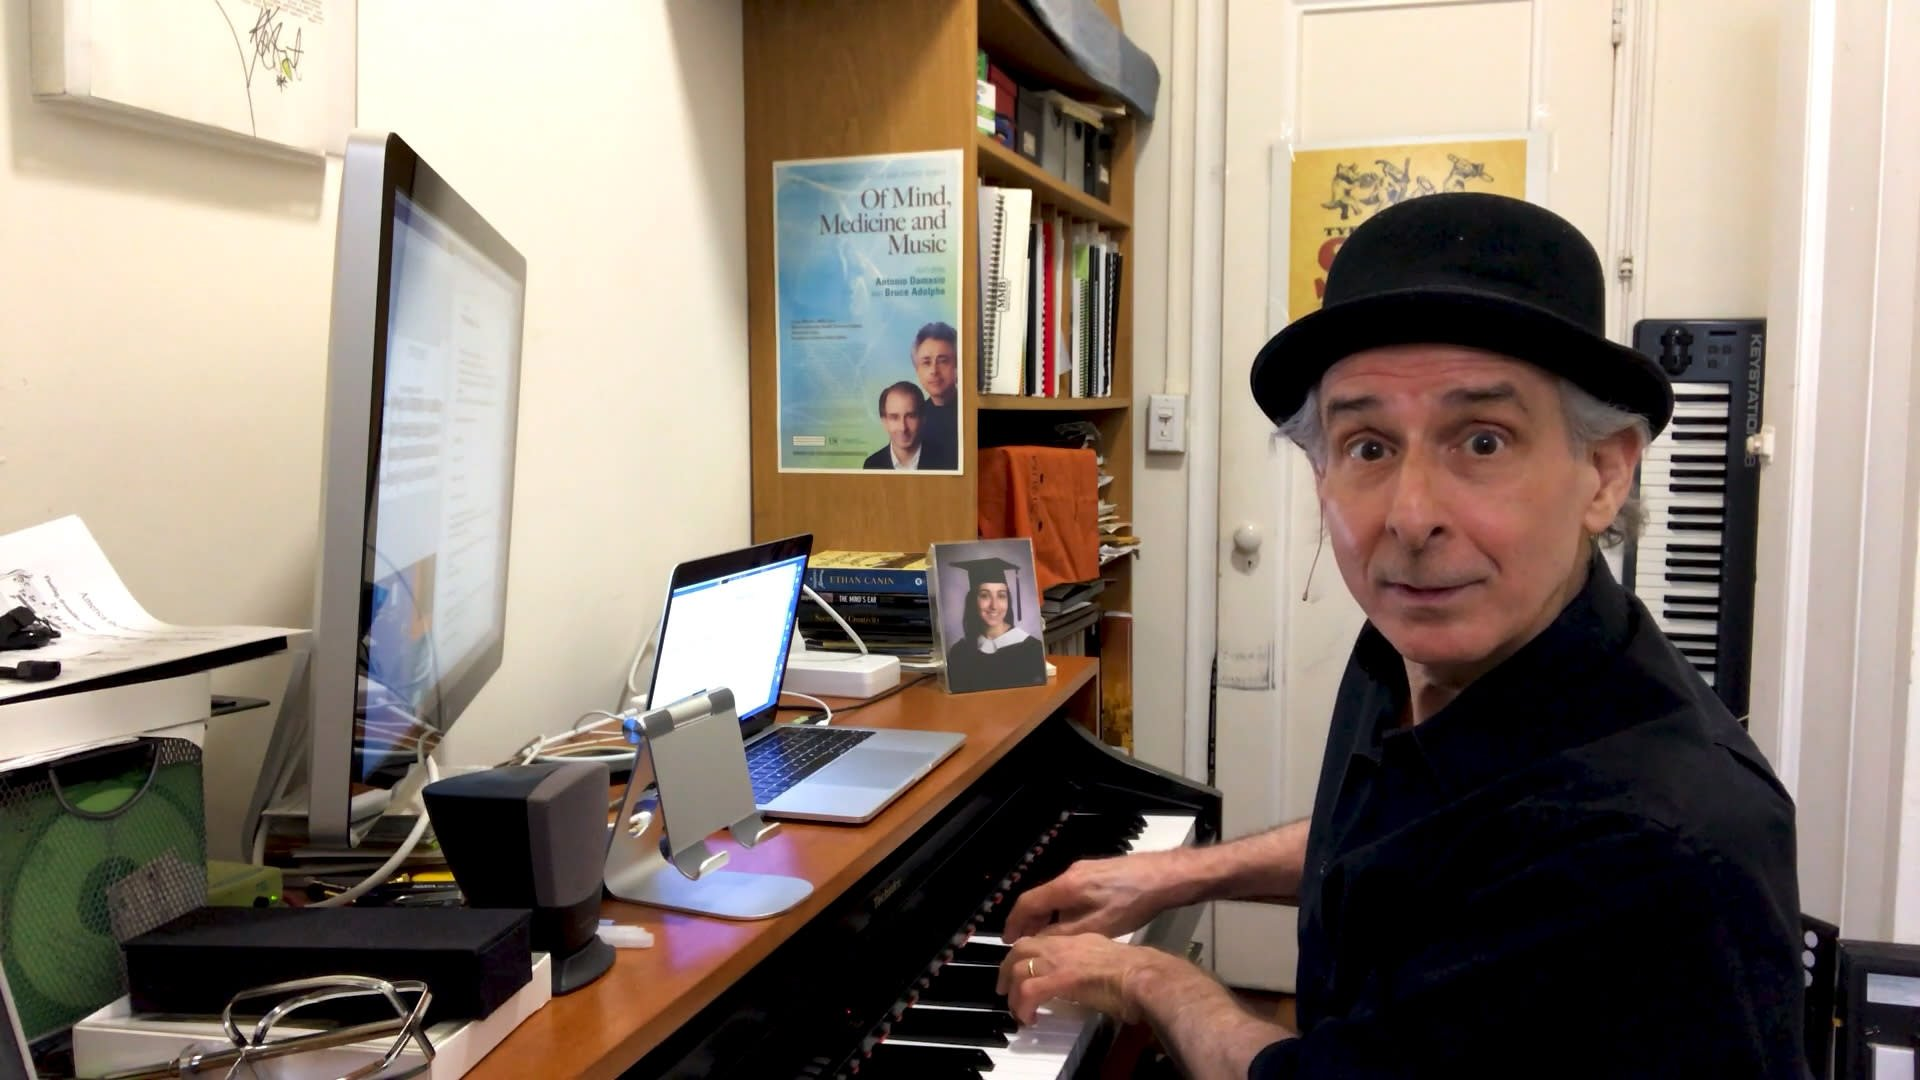 ONLINE Inspector Pulse@Home: Inspector Pulse Takes a Rest! at Chamber Music Society